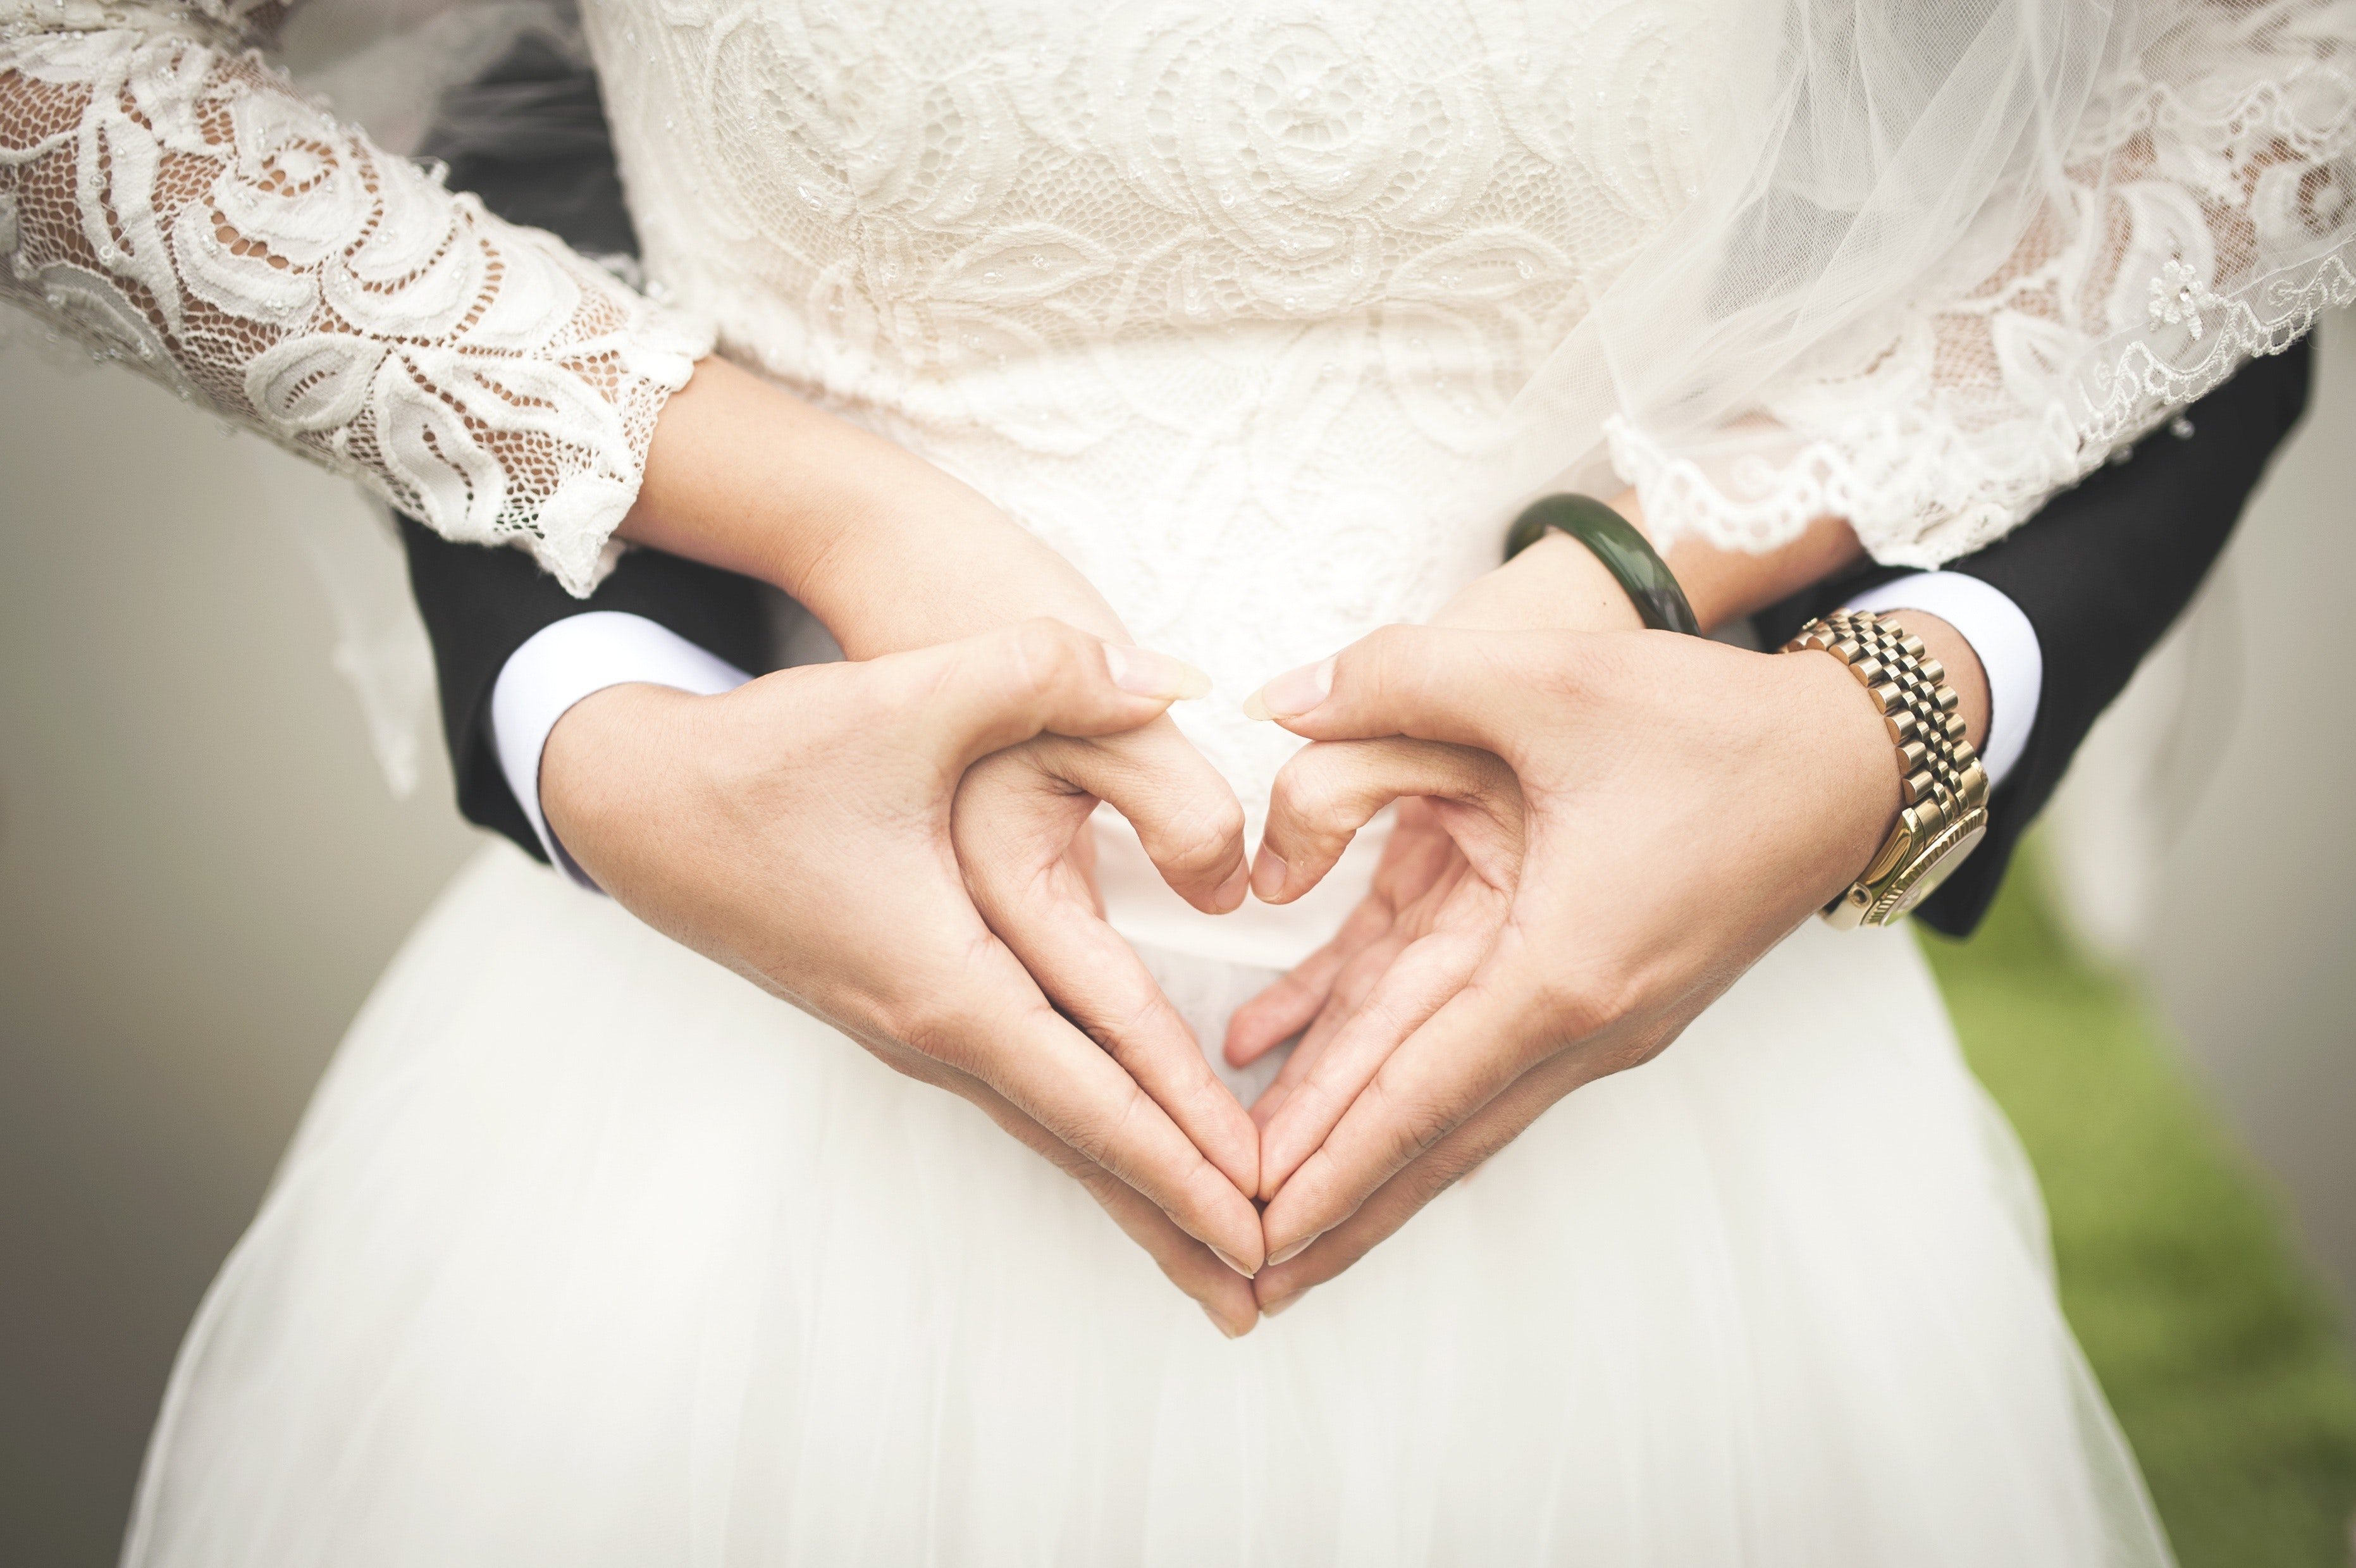 Marrying someone with Debt